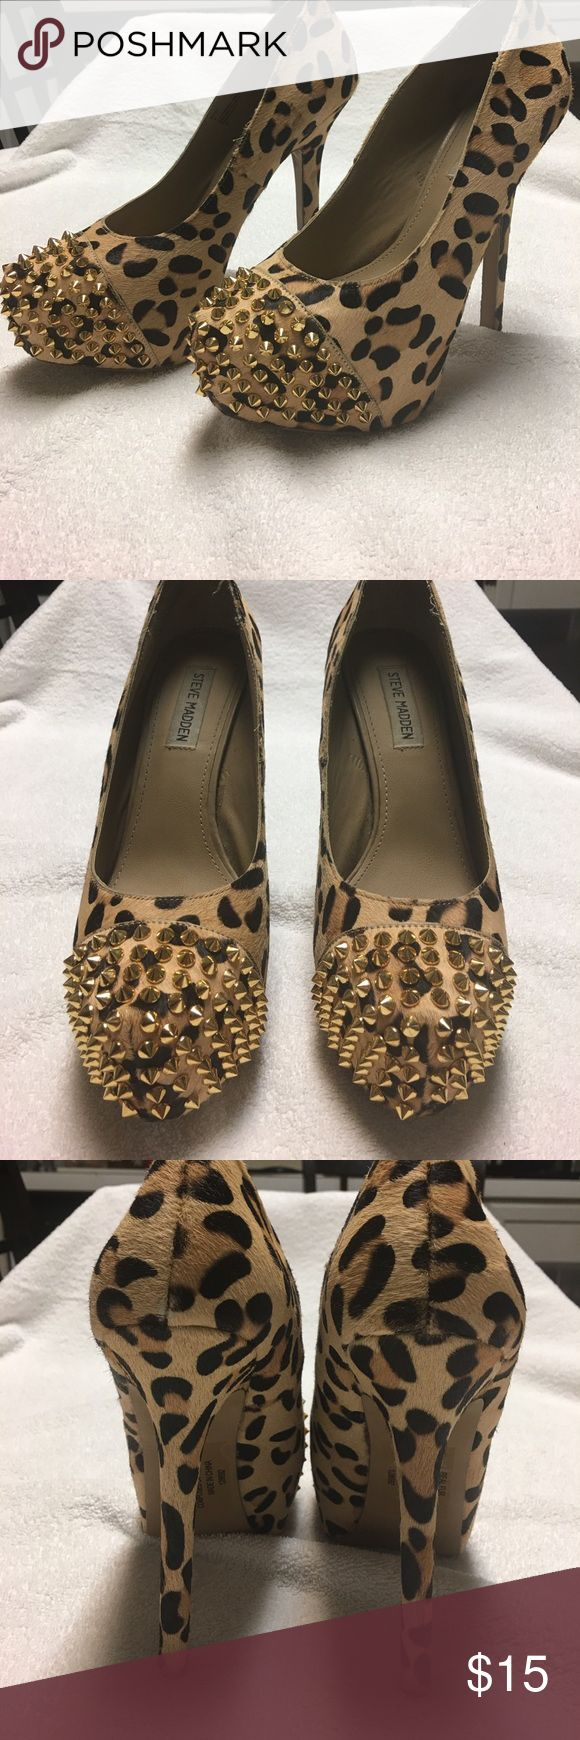 6inches cheetah heels Re-posh ,cheetah print,have been worn,re-sailing because they are to big for my feet but perfect for a person the fits a 9 Steve Madden Shoes Heels